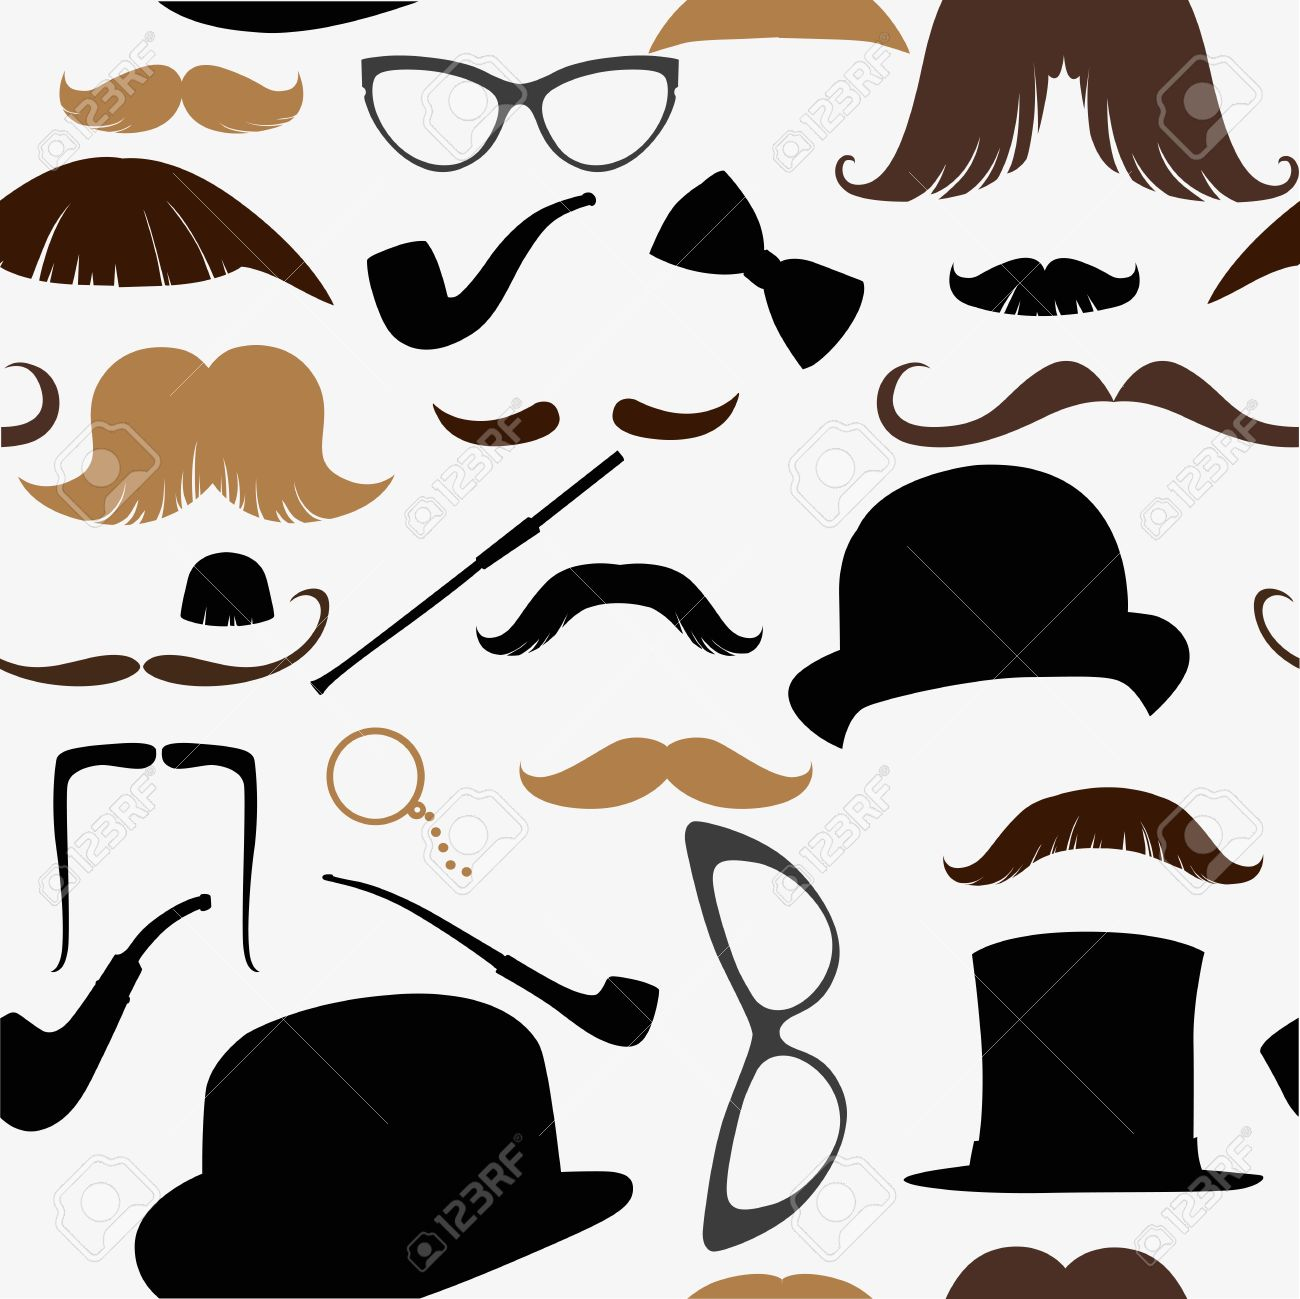 Art Deco seamless pattern, retro style, vector illustration mustache, hat, sunglasses, tube Stock Vector - 16030468